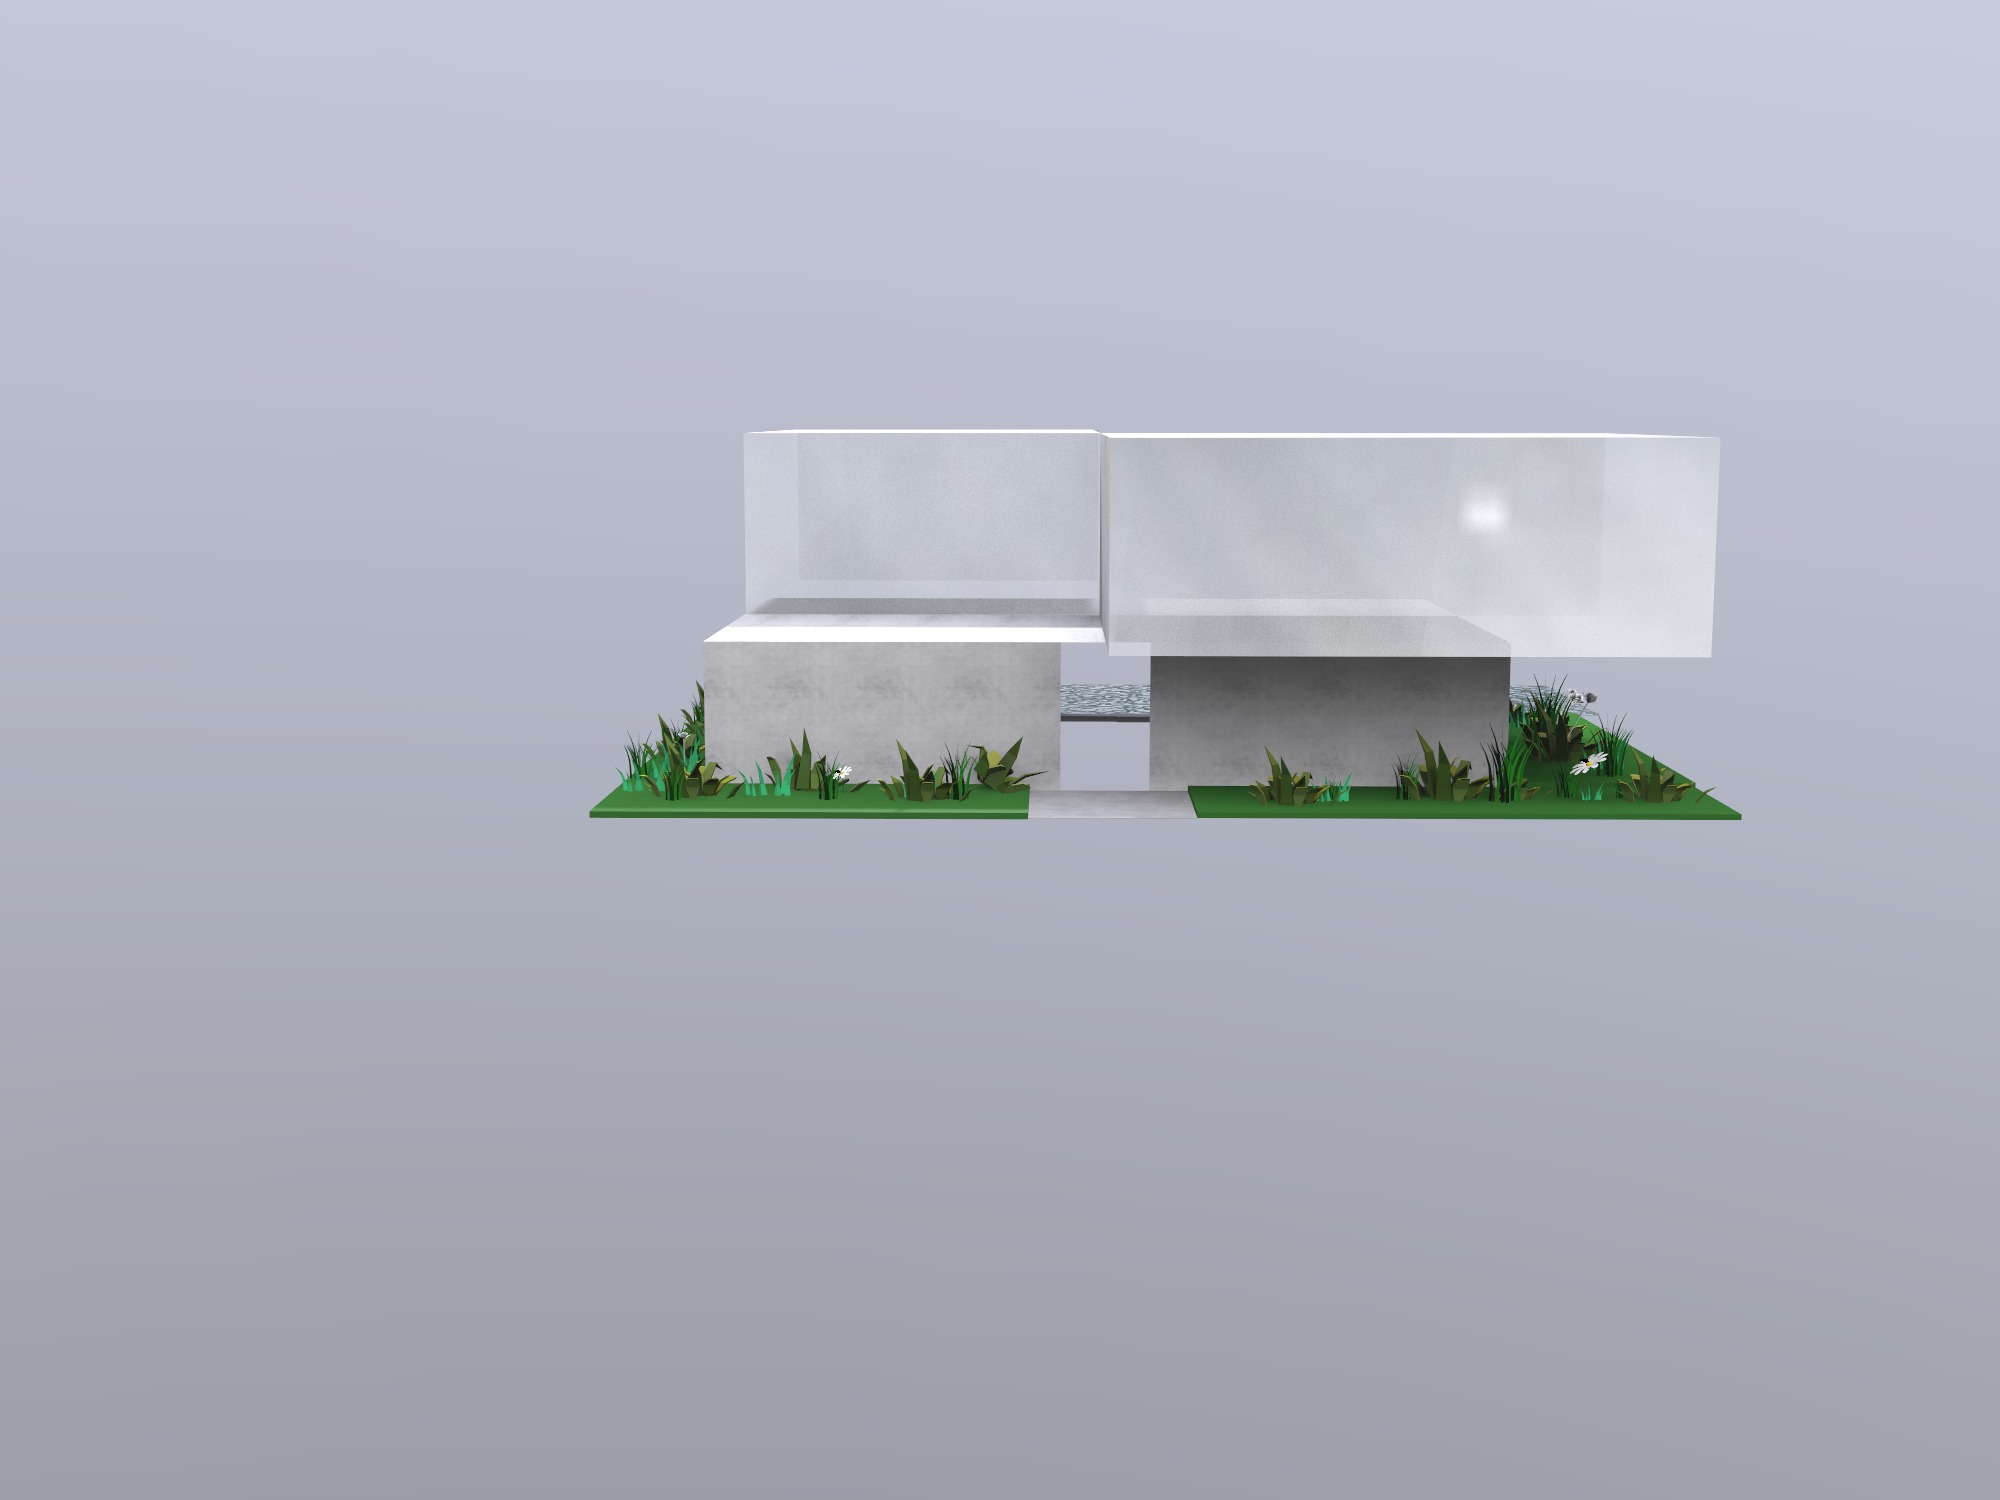 Ethan Modern Architecture - 3D design by ethan.norris on Dec 12, 2018